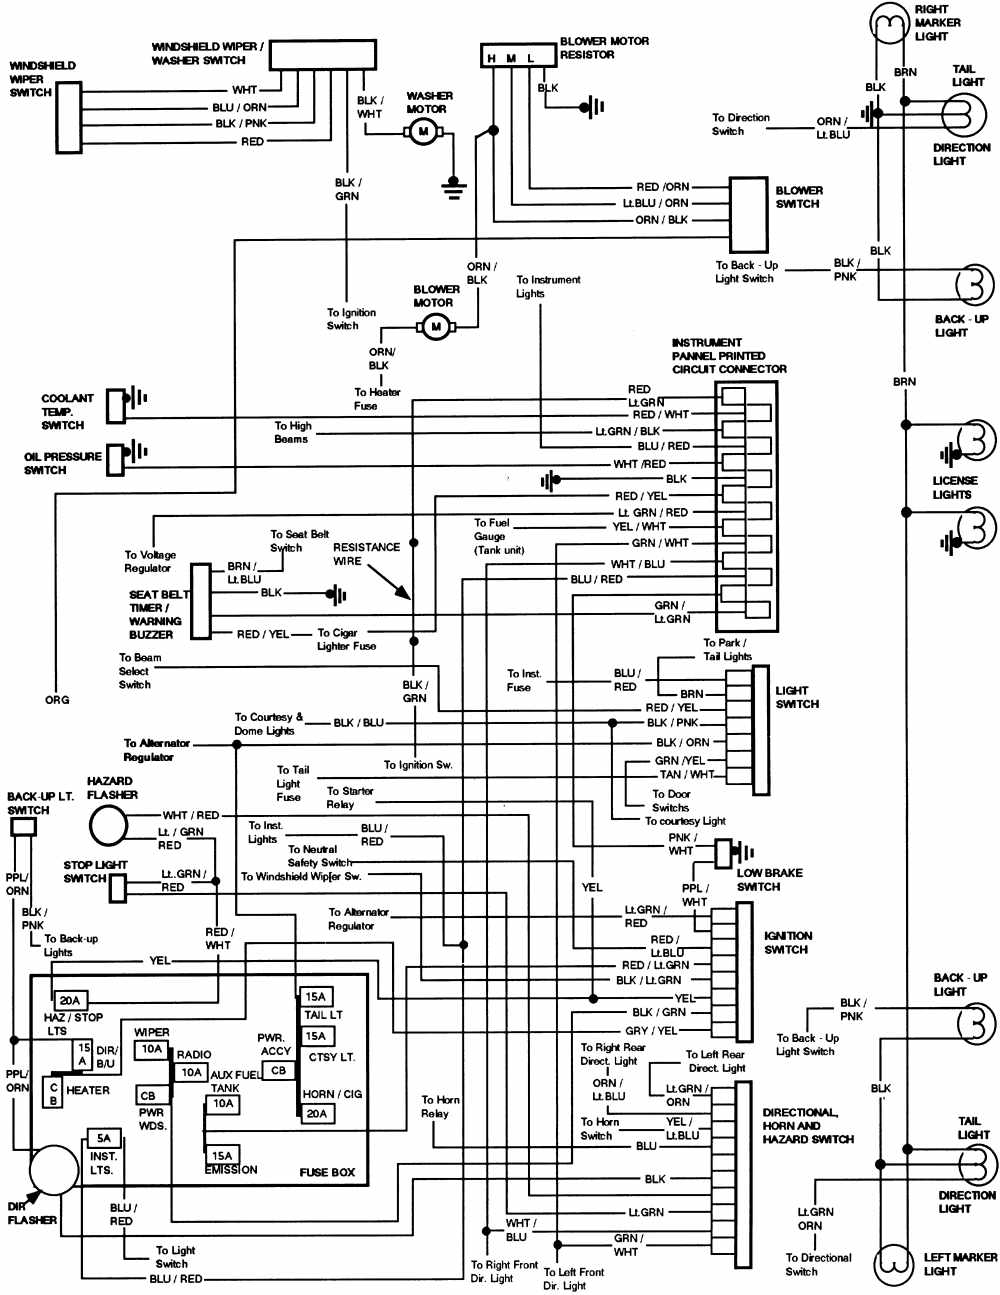 Yamaha 89 wiring diagram